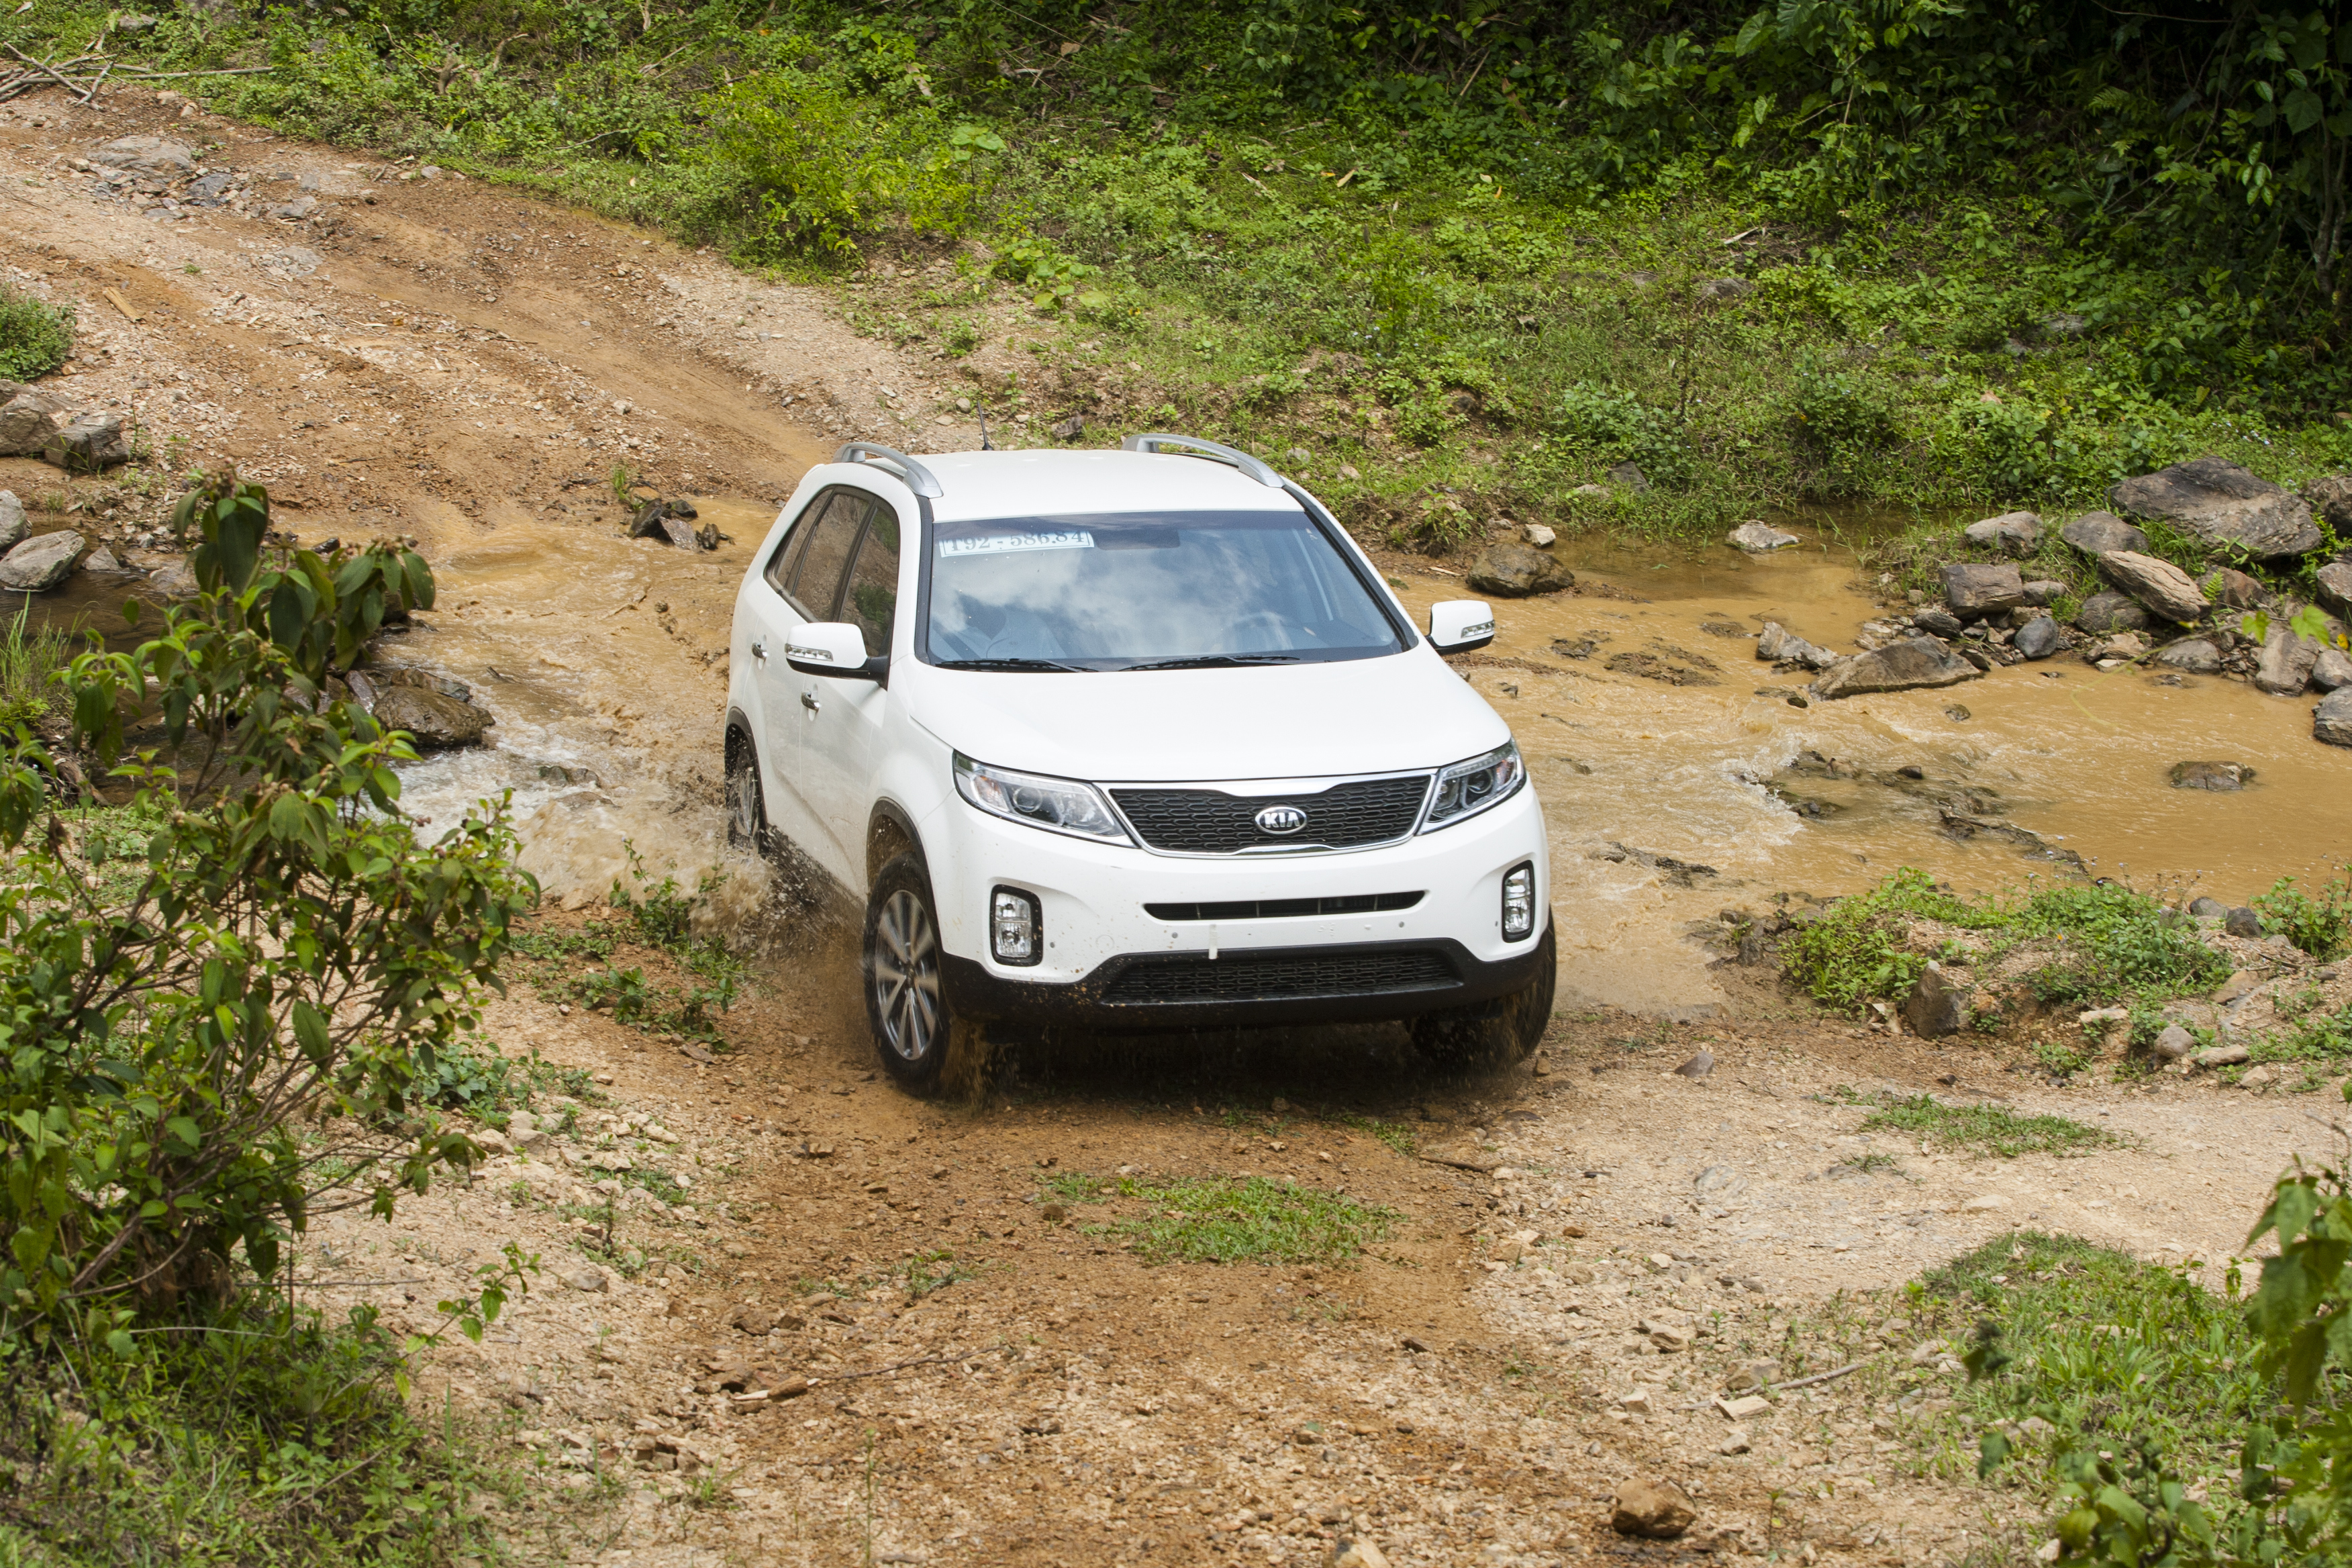 kia sorento through muddy ground